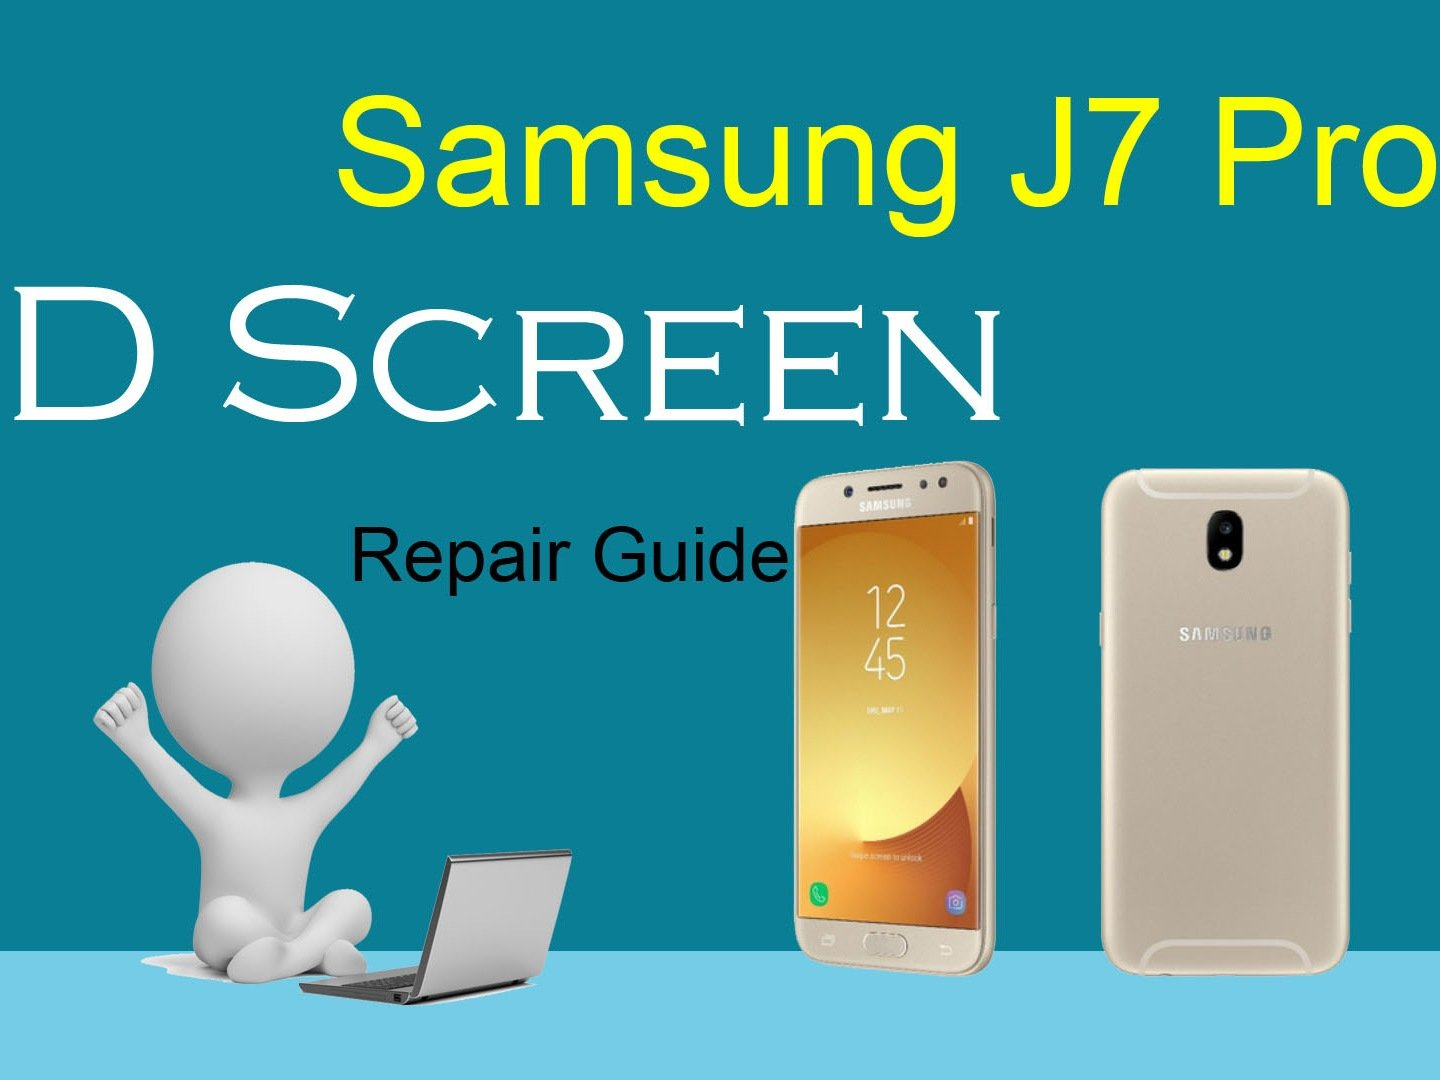 e75b617be6 Samsung J7 Pro LCD Display Replacement - iFixit Repair Guide